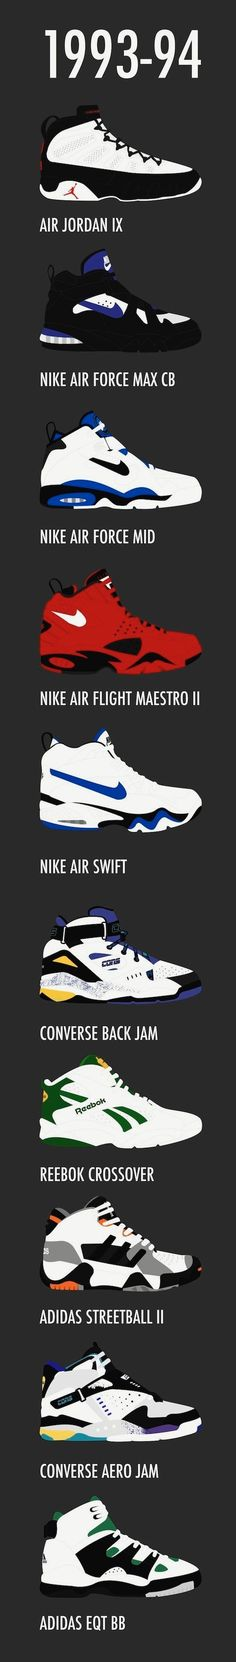 reputable site 8a2c3 30484 My top 100 · Basketball SneakersNike ...